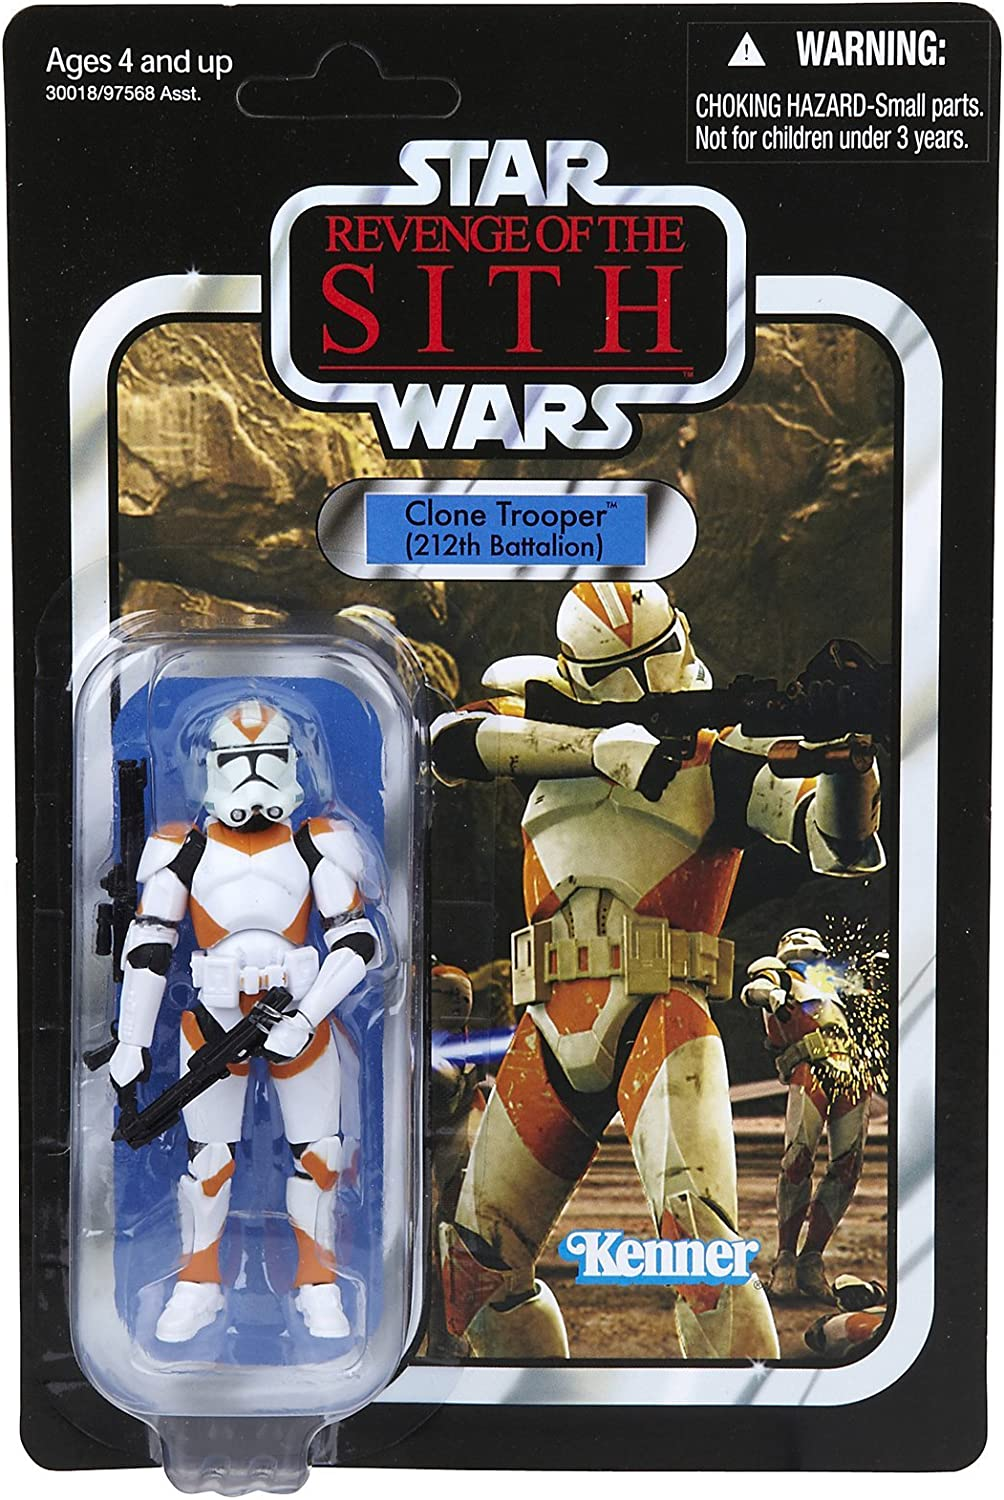 Star Wars Revenge Of The Sith Clone Trooper 212th Battalion Amazon Co Uk Toys Games